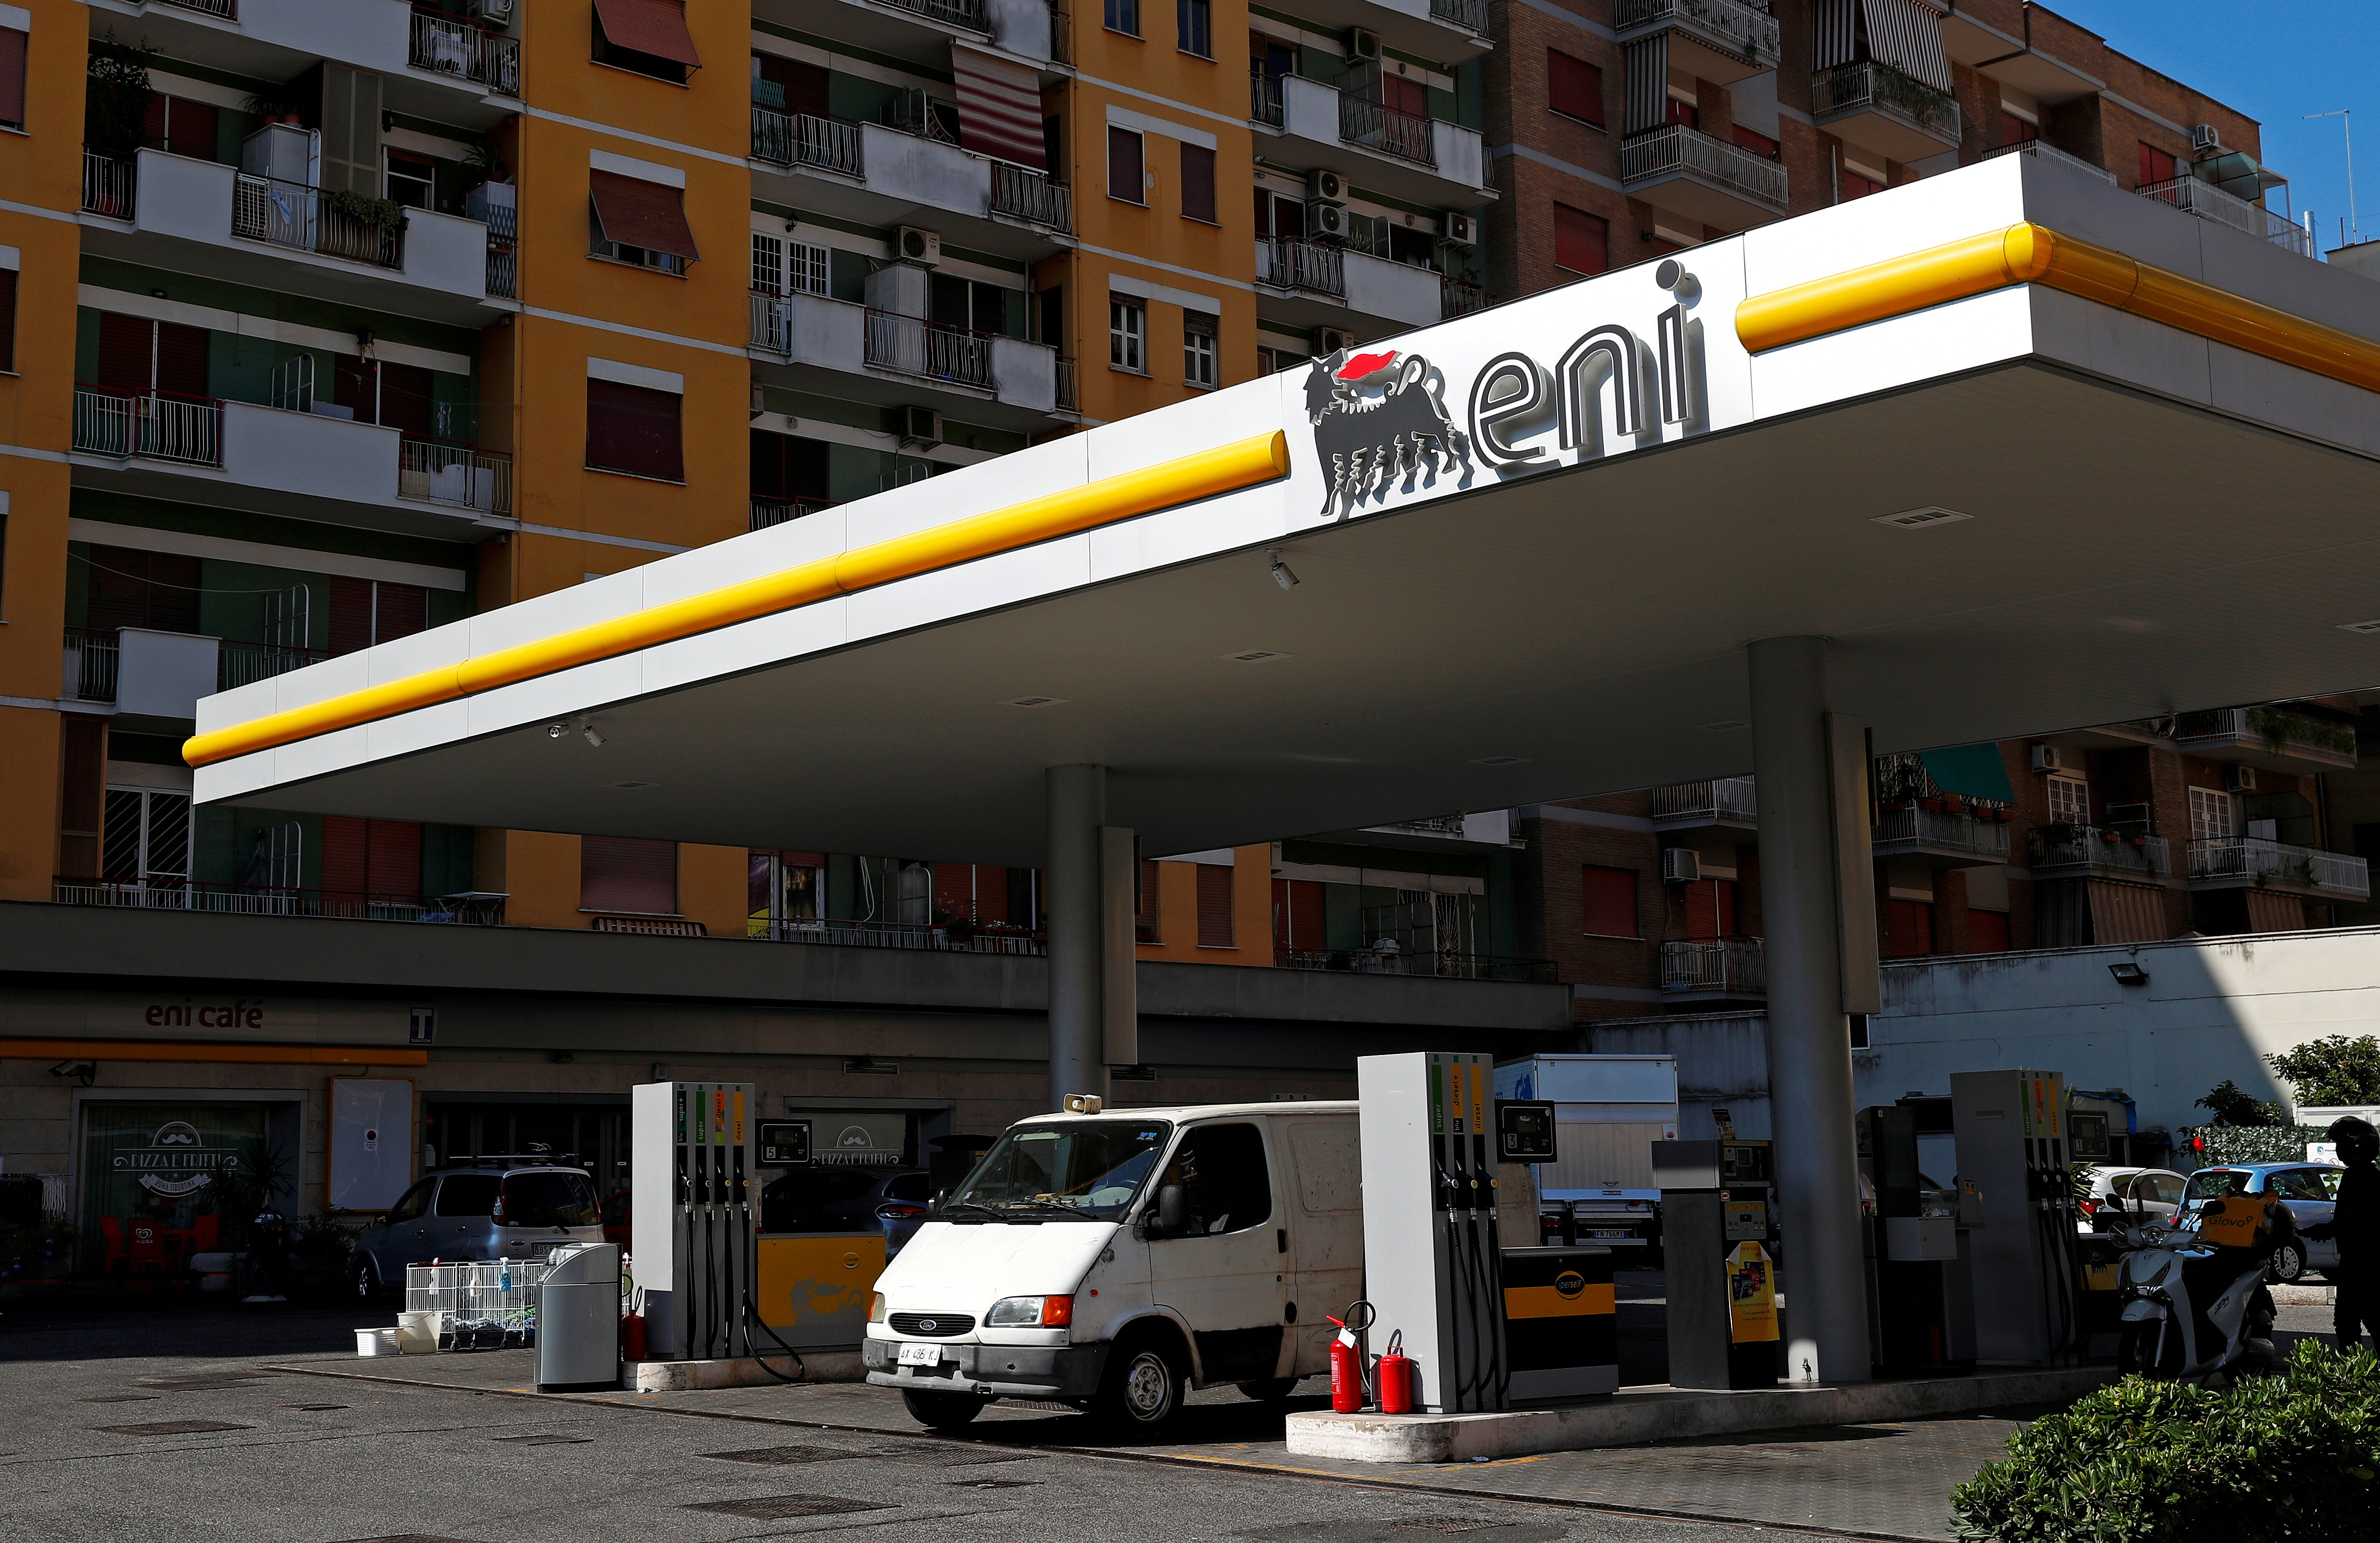 The logo of Italian energy company Eni is seen at a gas station in Rome, Italy August 16, 2018.  REUTERS/Max Rossi